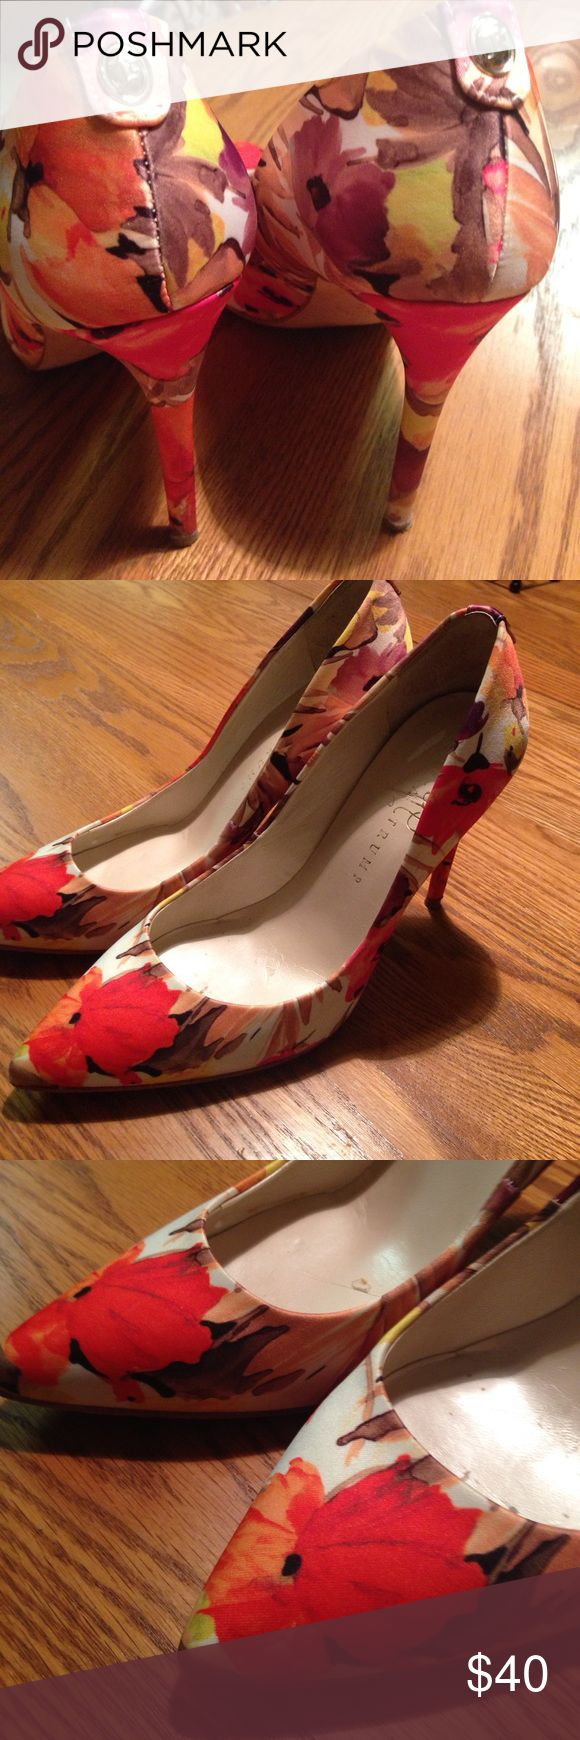 Ivanka trump adorable heels 7, good condition Worn a few times, comfortable, just a bit too high for me. Ivanka Trump Shoes Heels